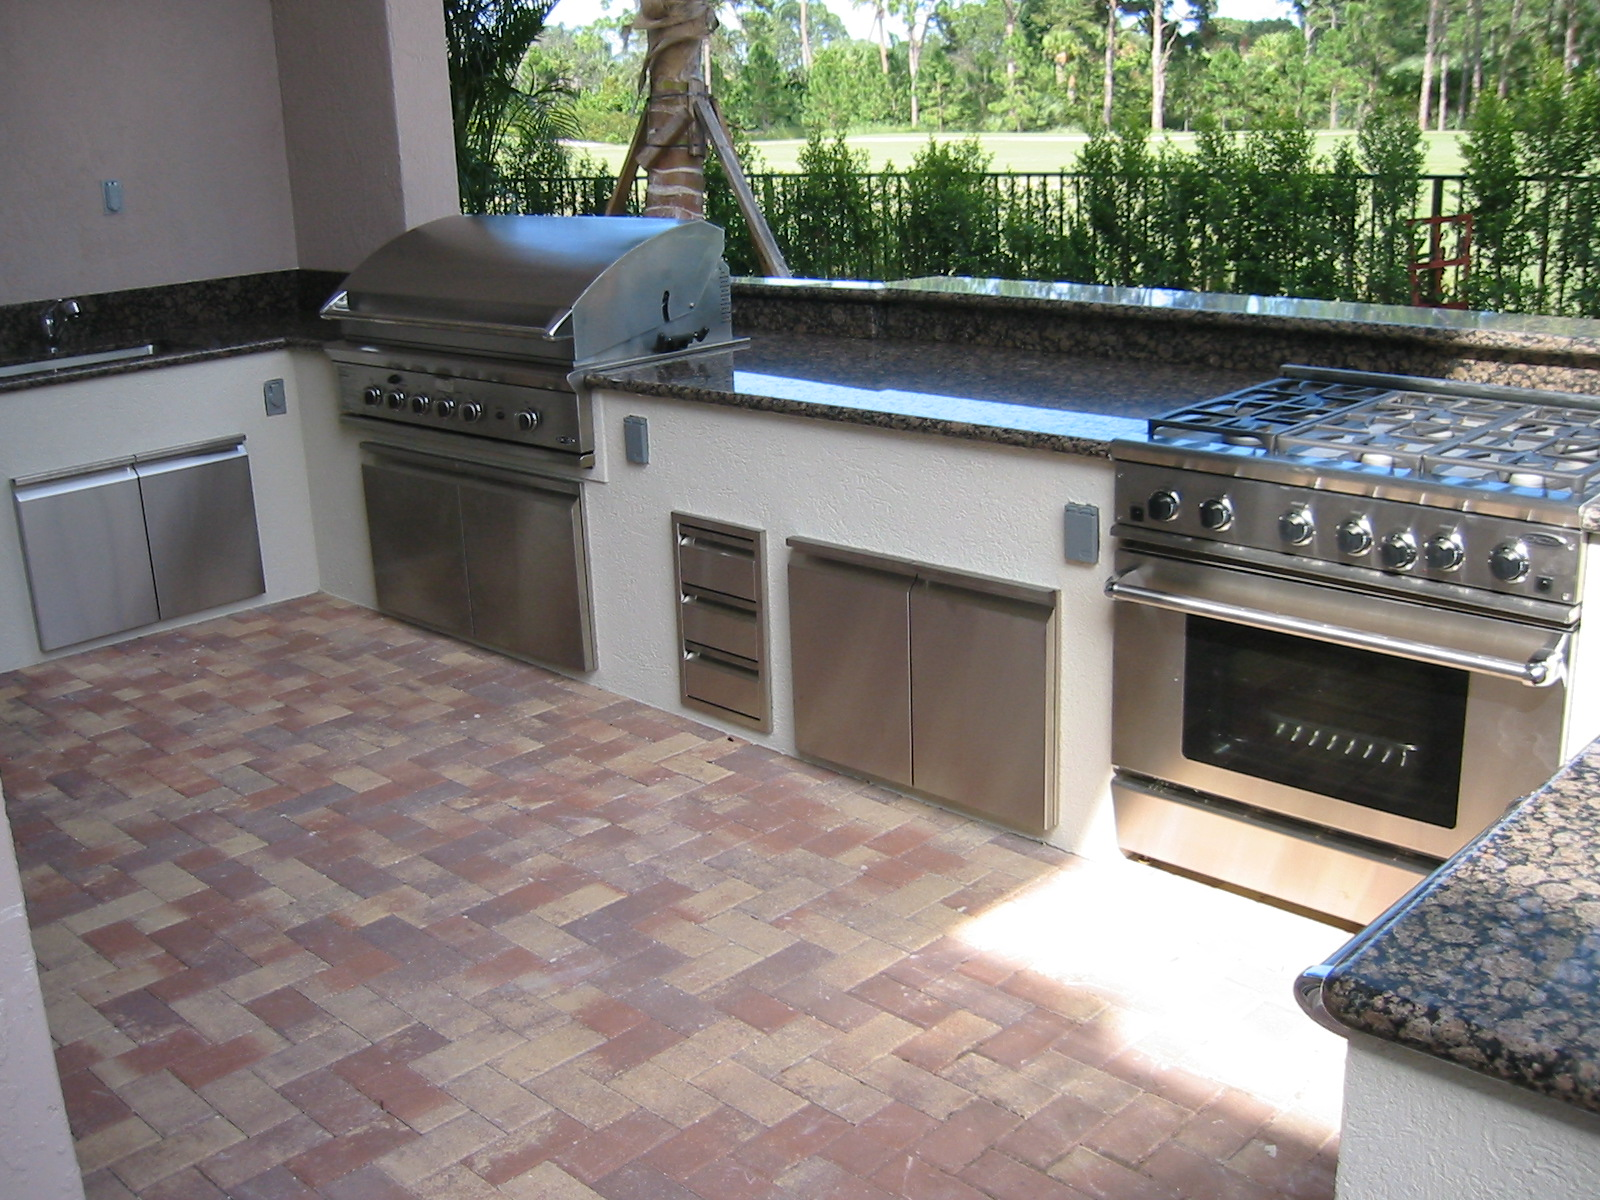 Outdoor Kitchen Design Images | GRILL-REPAIR.COM barbeque ... on Built In Grill Backyard id=89611